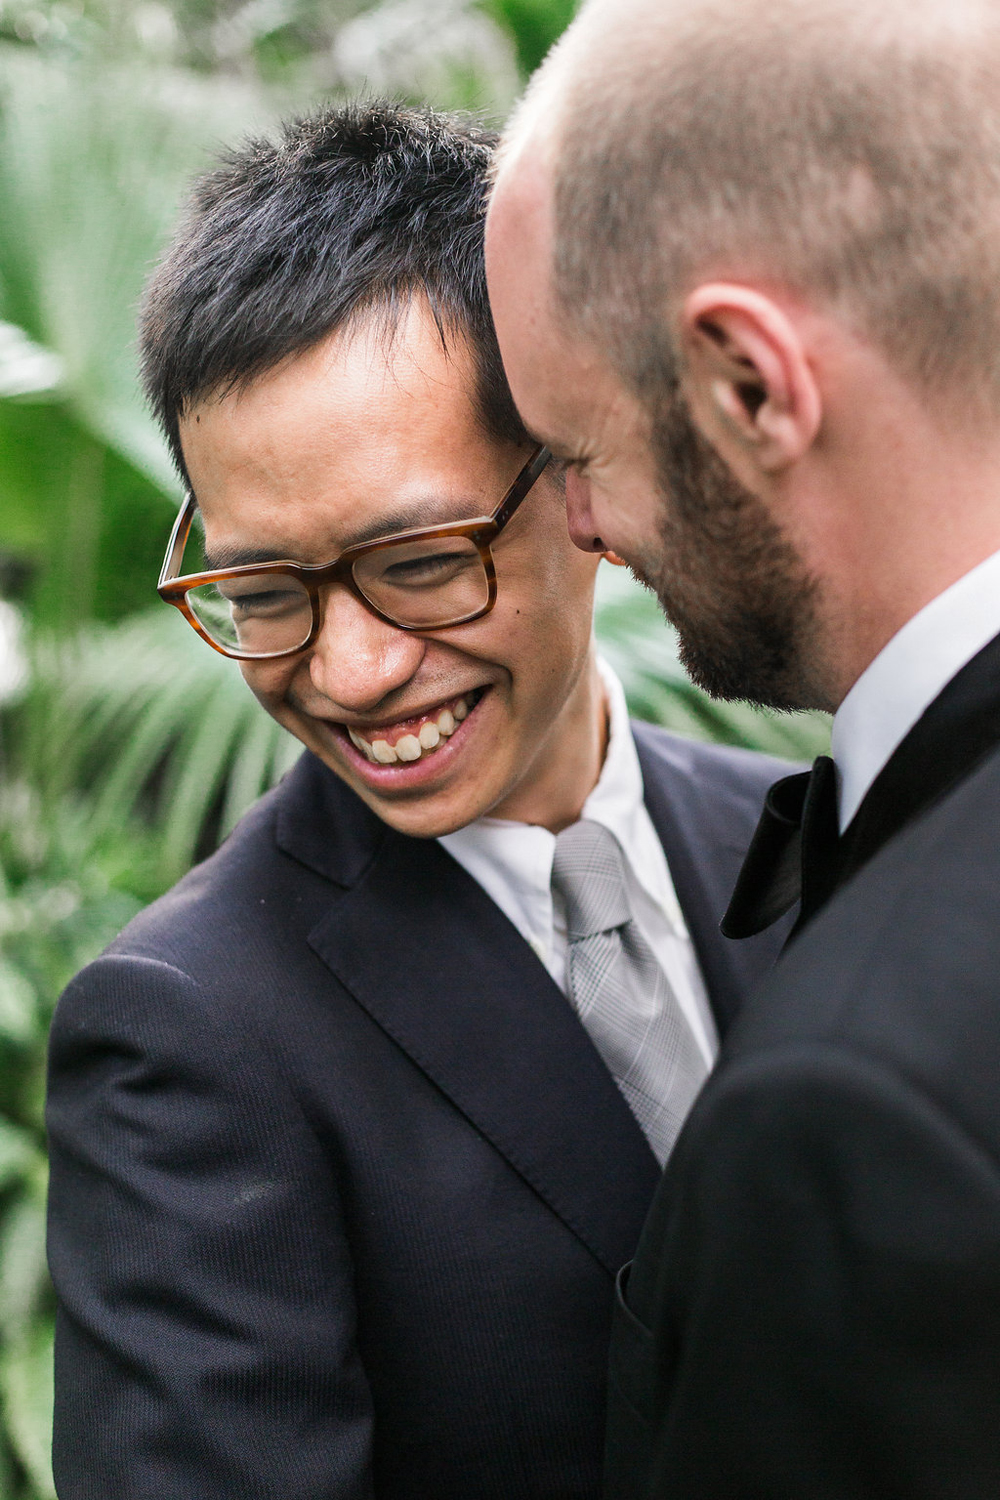 Gay Wedding at Bloedel Conservatory-28